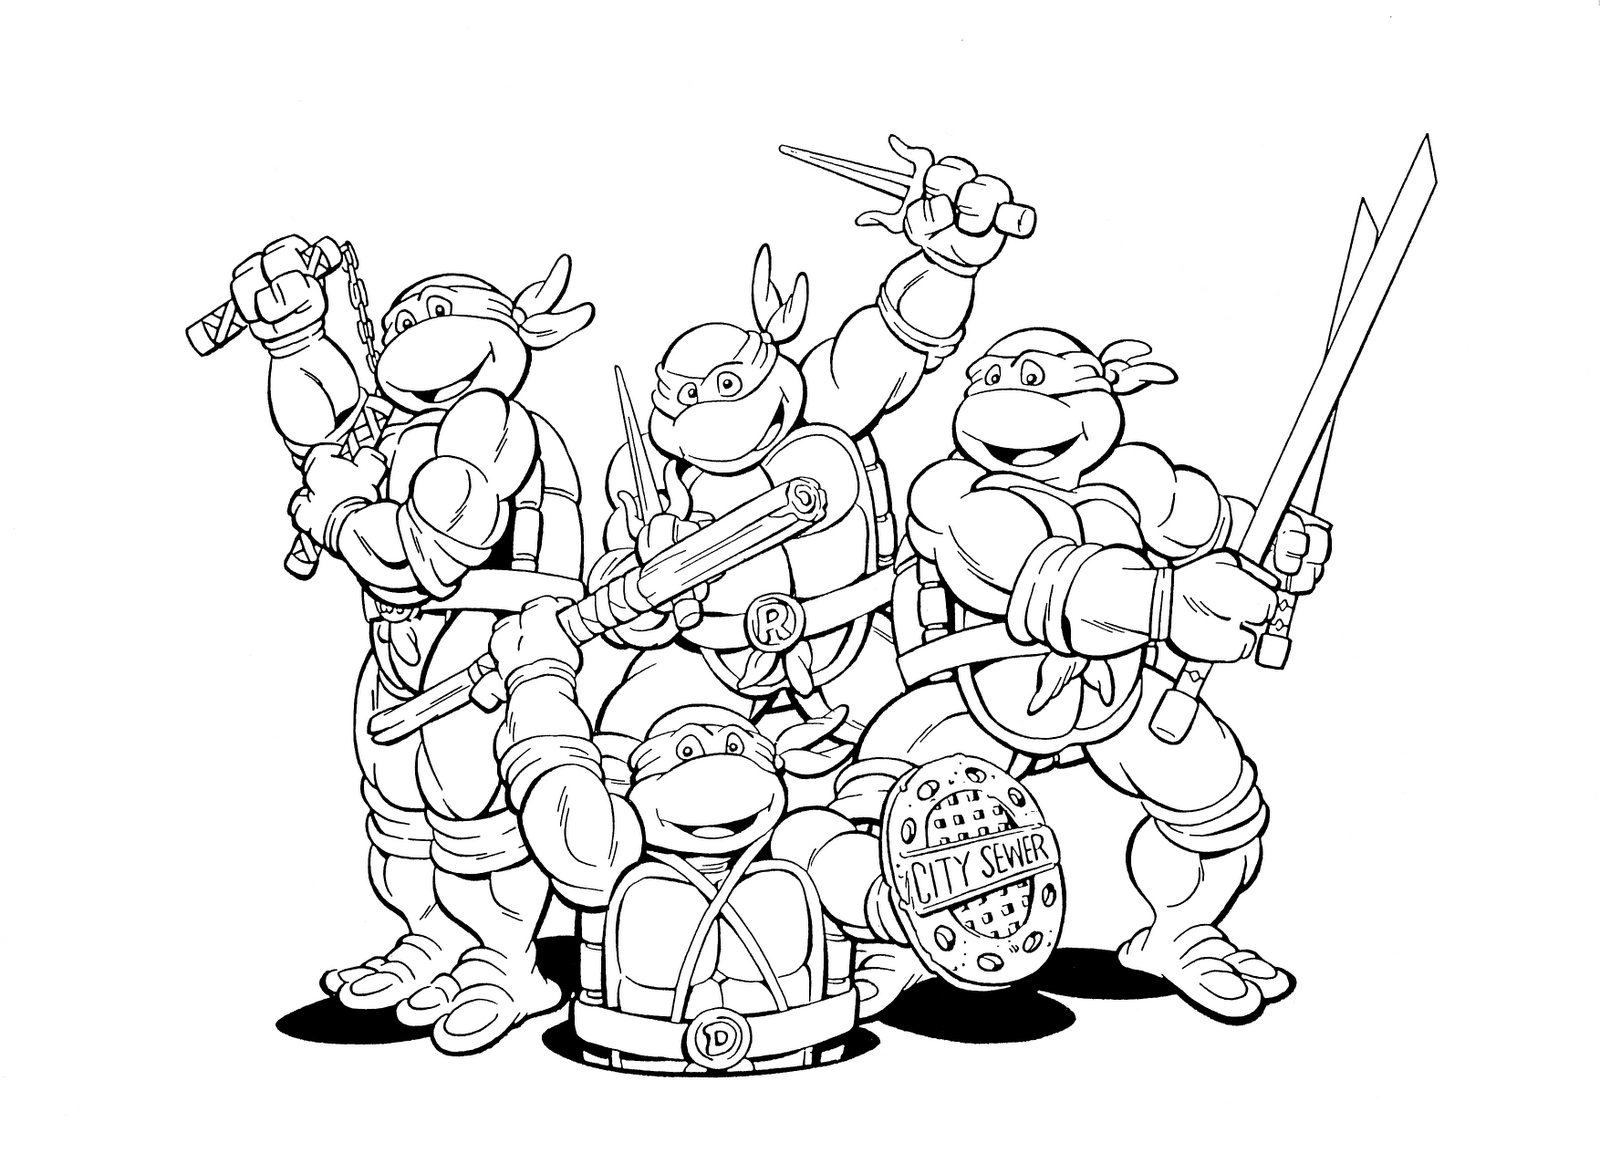 ninja turtles pictures to color ninja turtle coloring pages free printable pictures ninja color turtles to pictures